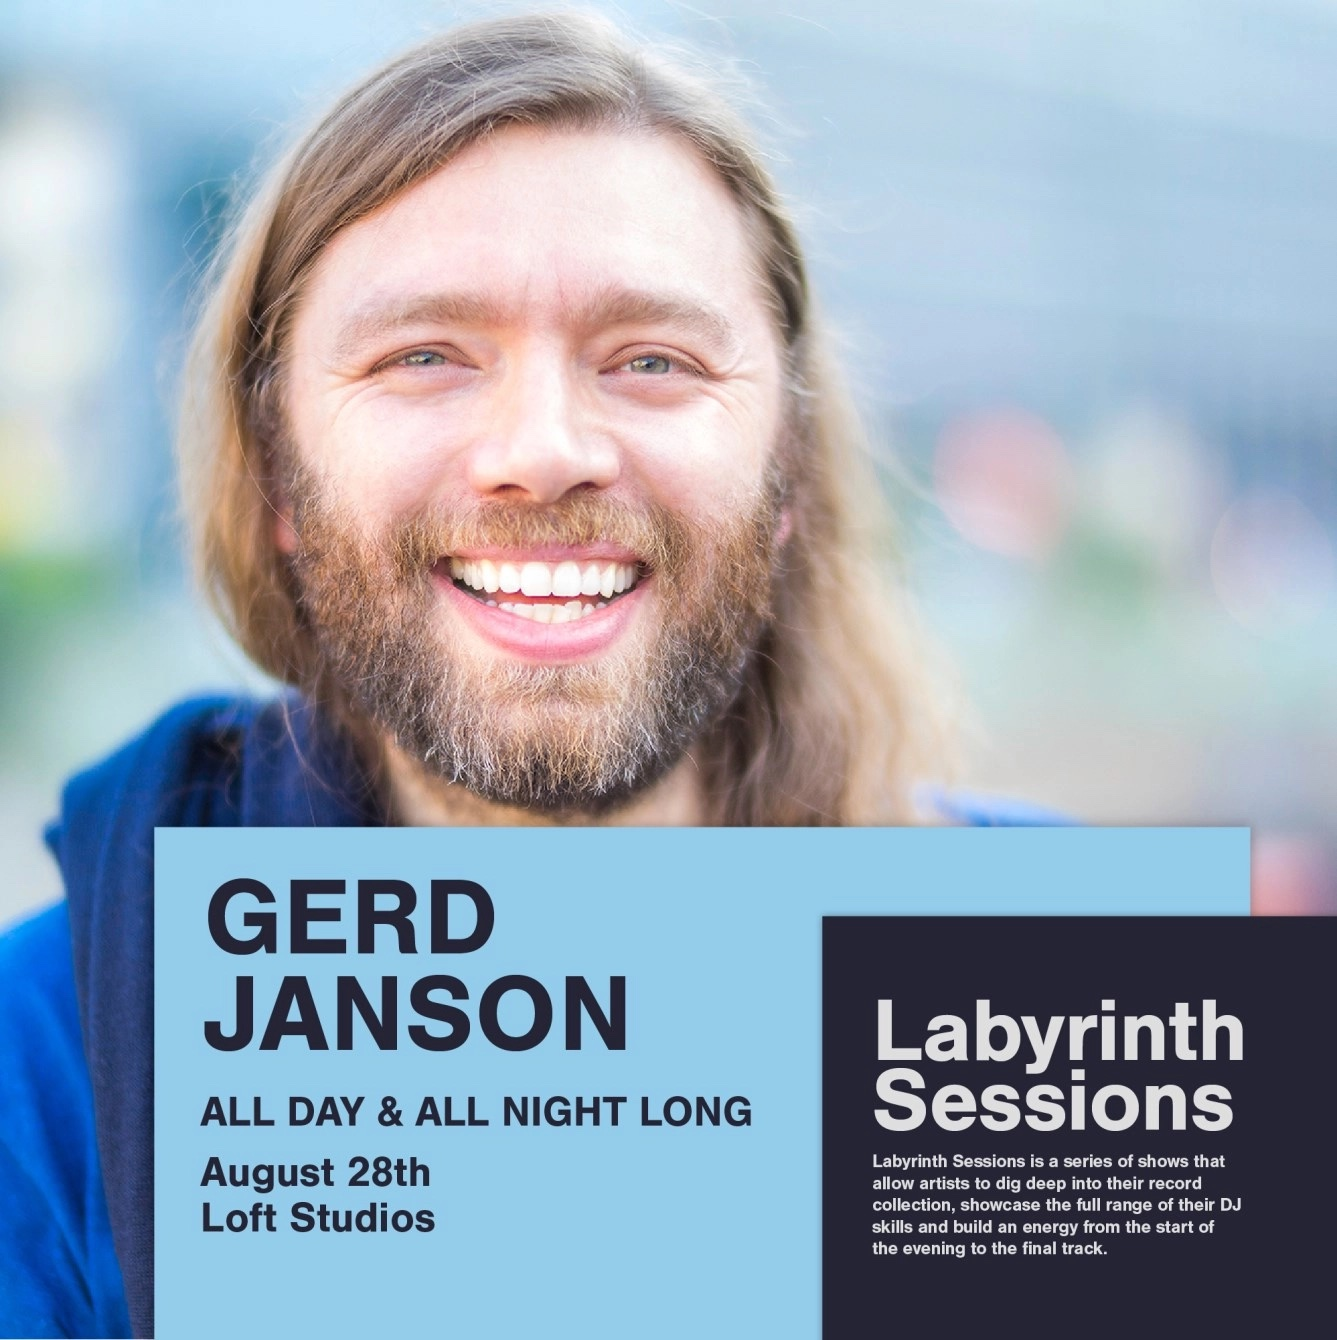 Labyrinth Sessions: Gerd Janson All Day & Night Long